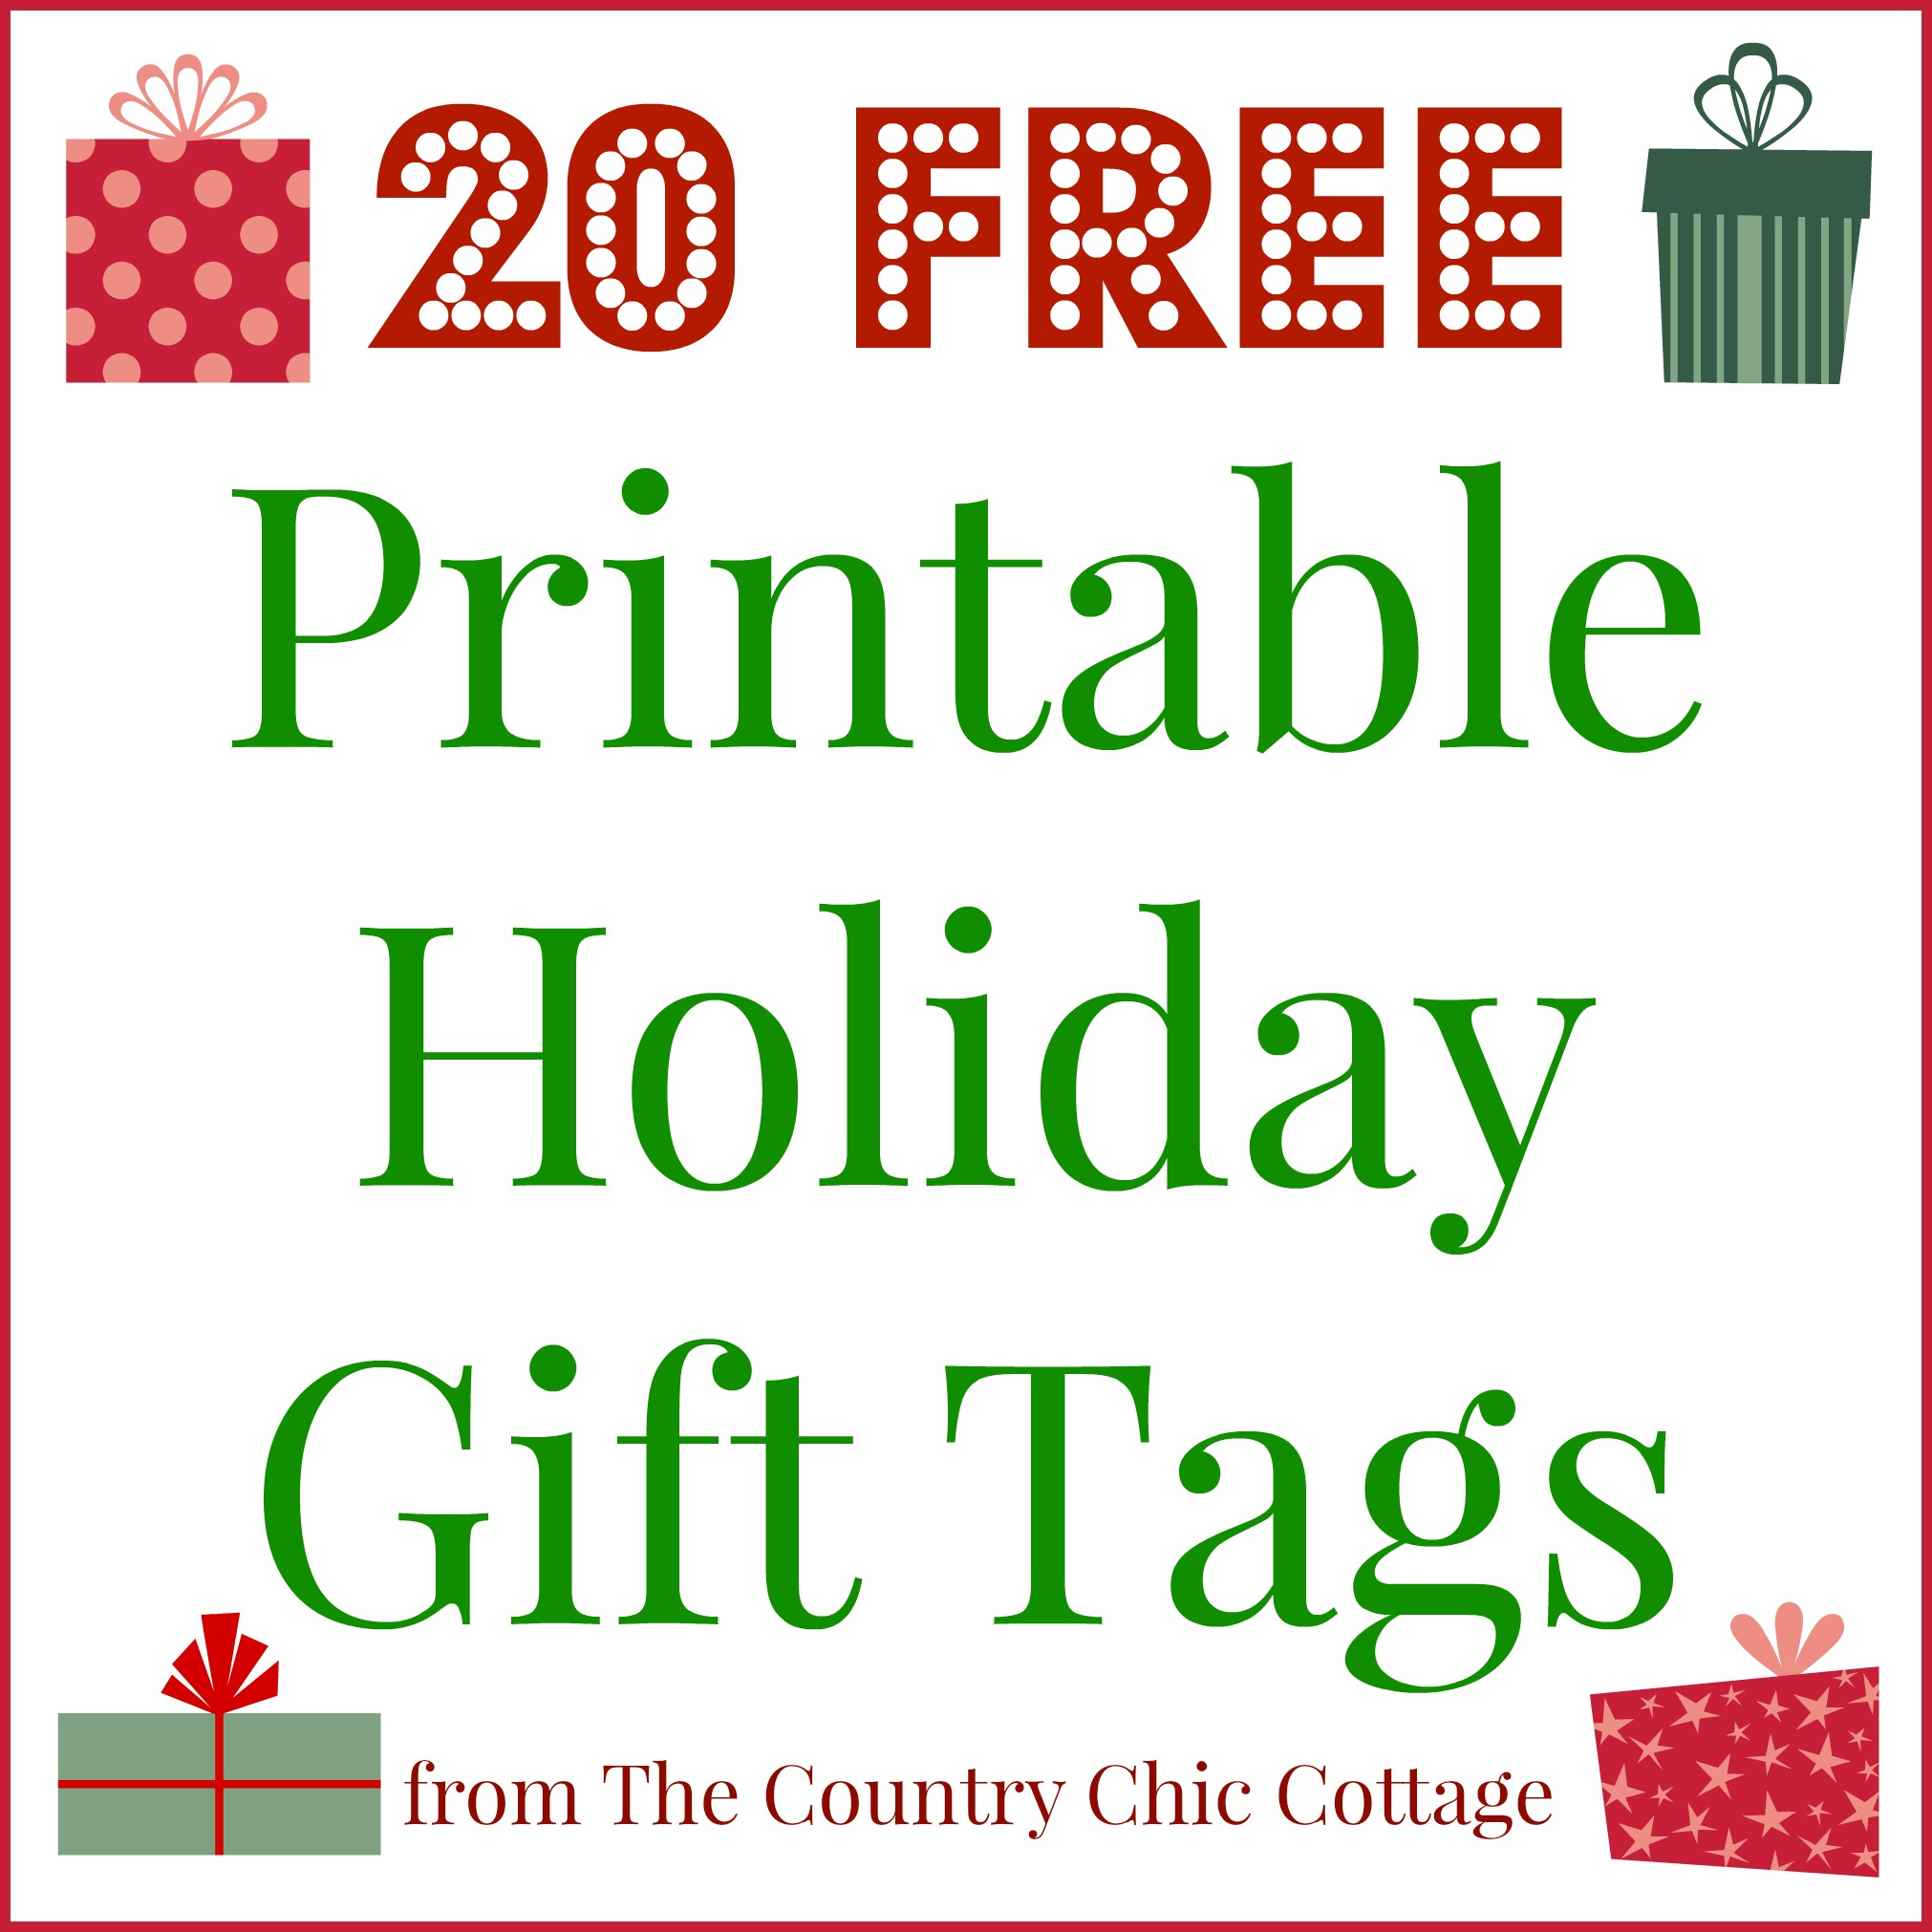 20 Printable Holiday Gift Tags (For Free!!) - The Country Chic Cottage - Free Printable Christmas Tags